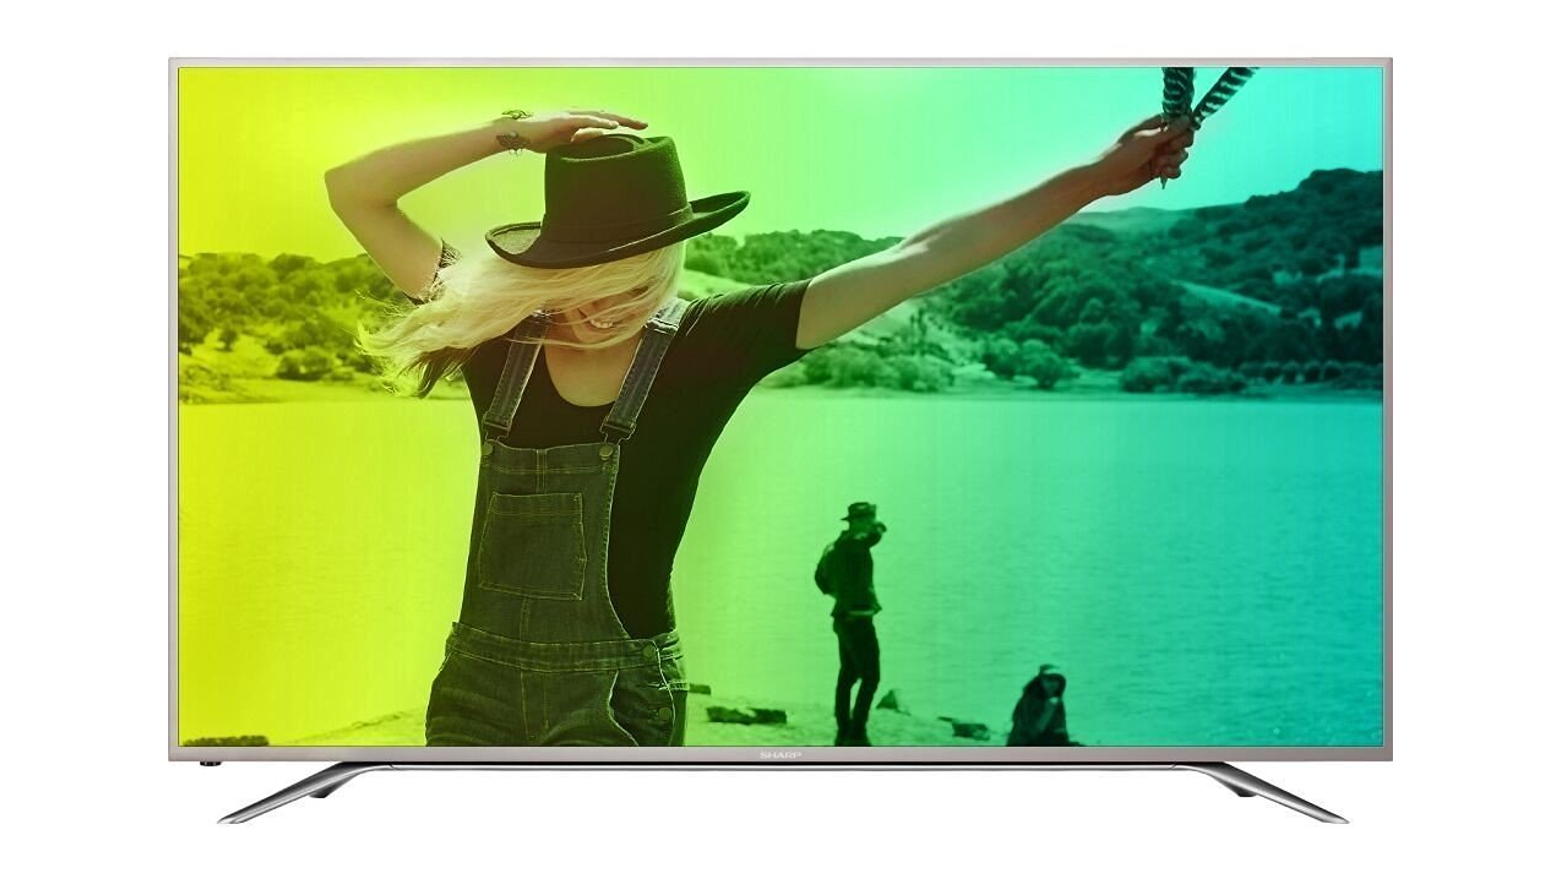 best 4k tv, 4k tv, uhd, top 10 uhd tv, highest rated 4k tv, 4k tv reviews, best 4k tv deals, 65 inch sharp, 65 tv, 65 inch tv, 65 inch led tv, sharp 4k tv, sharp 4k, sharp aquos 4k